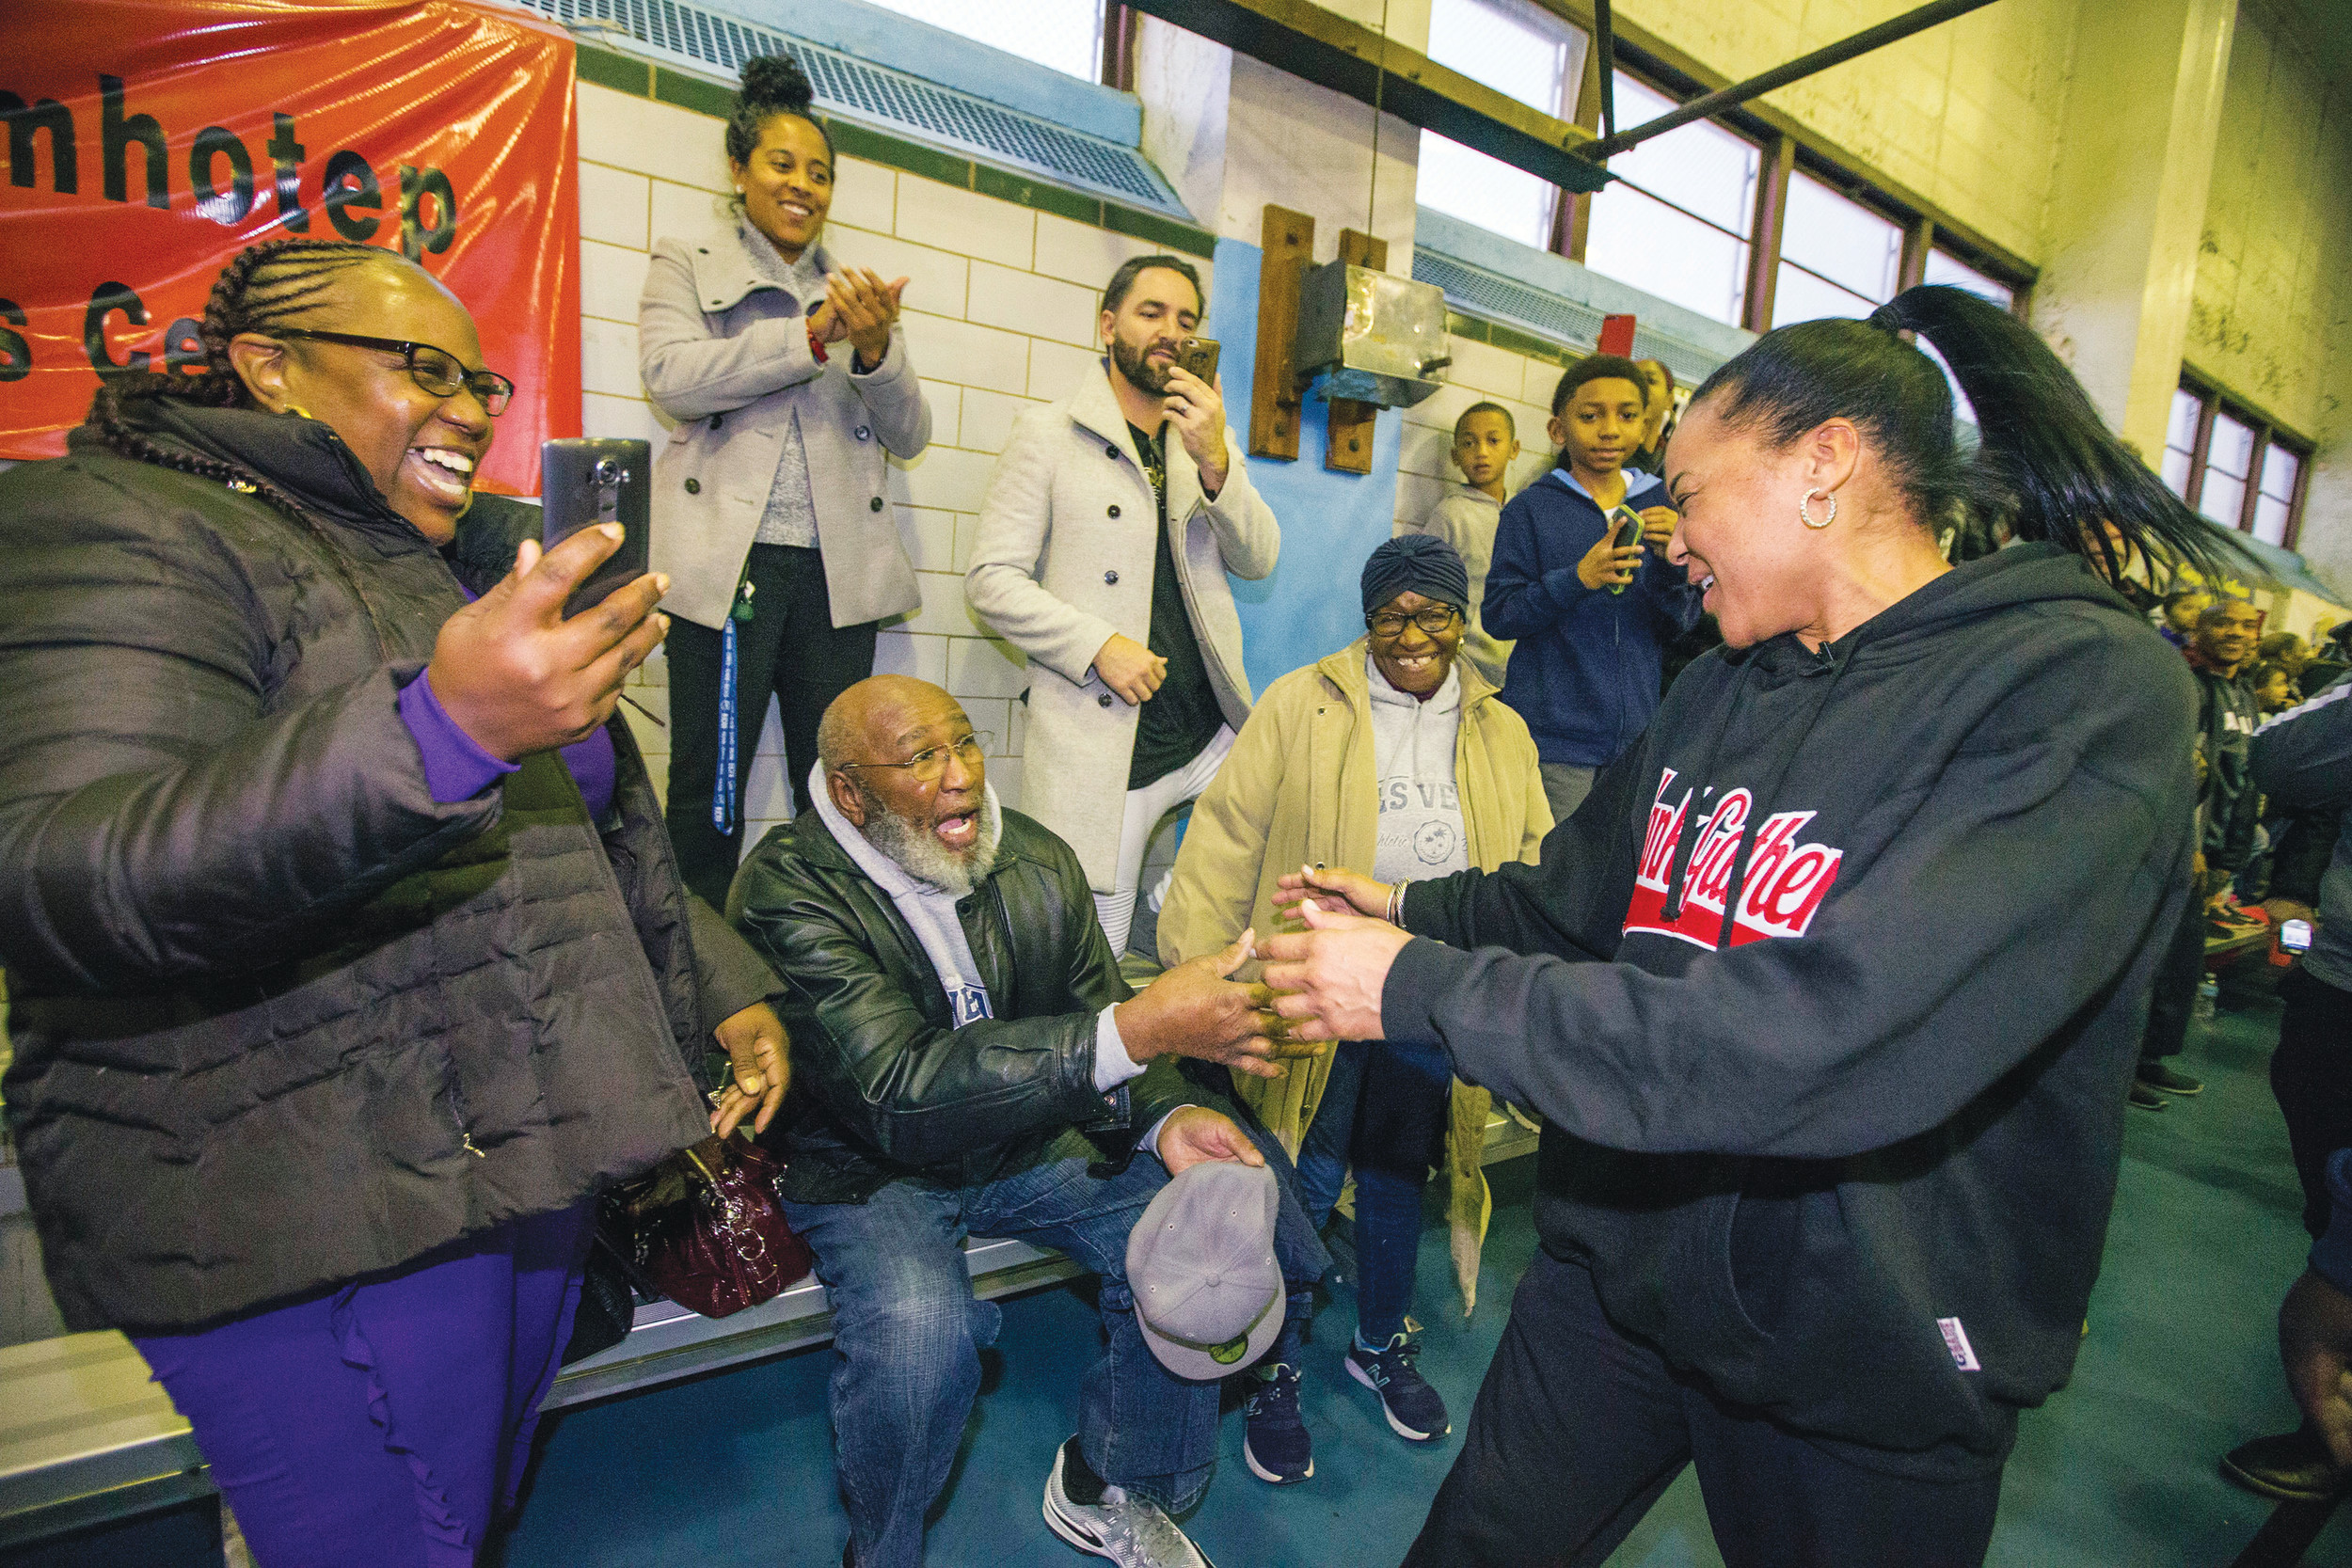 Dawn Staley, right, is greeted by neighborhood friends as Dawn Staley Day is celebrated on Dec. 20 at the Hank Gathers Recreation Center in Philadelphia.